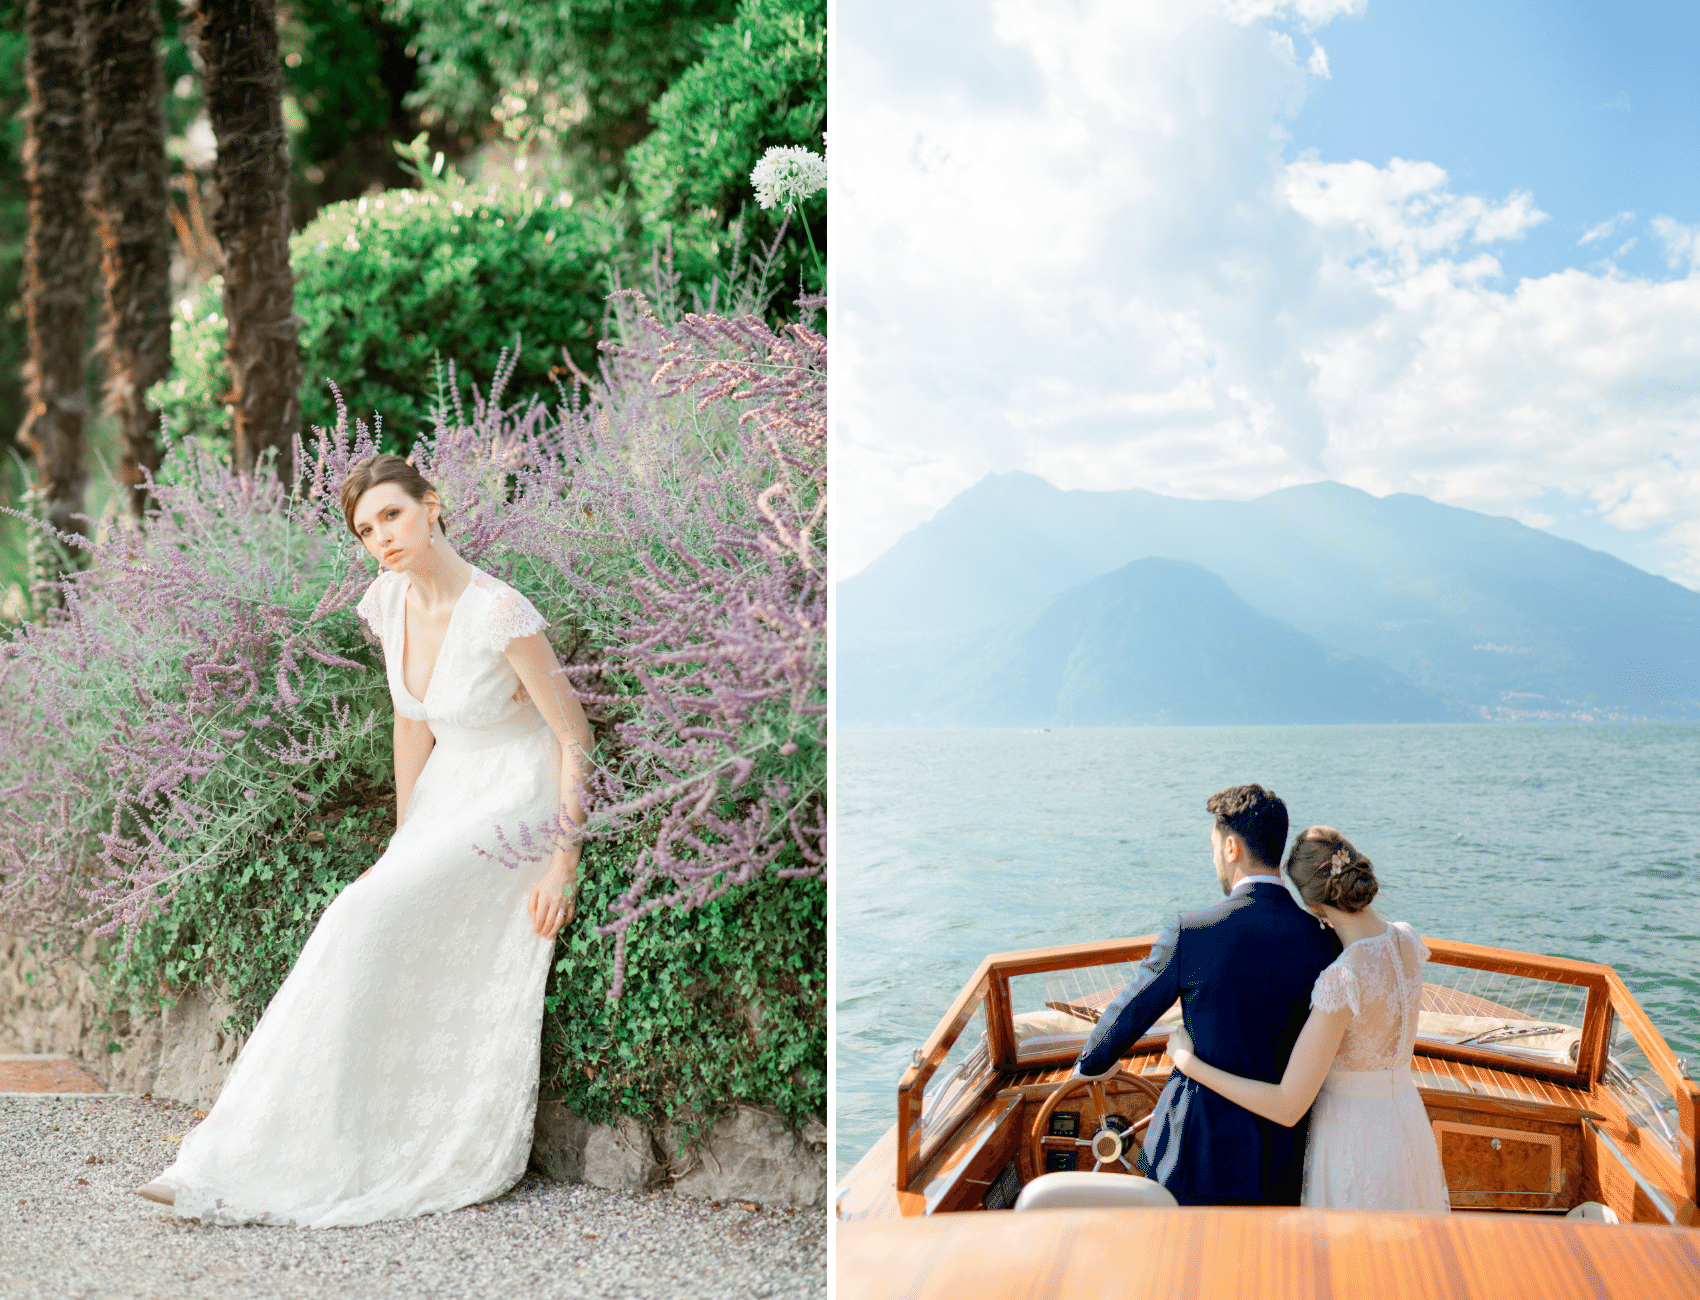 This blogpost shares over 20 luxury wedding venues in Italy with intimate, unknown venues